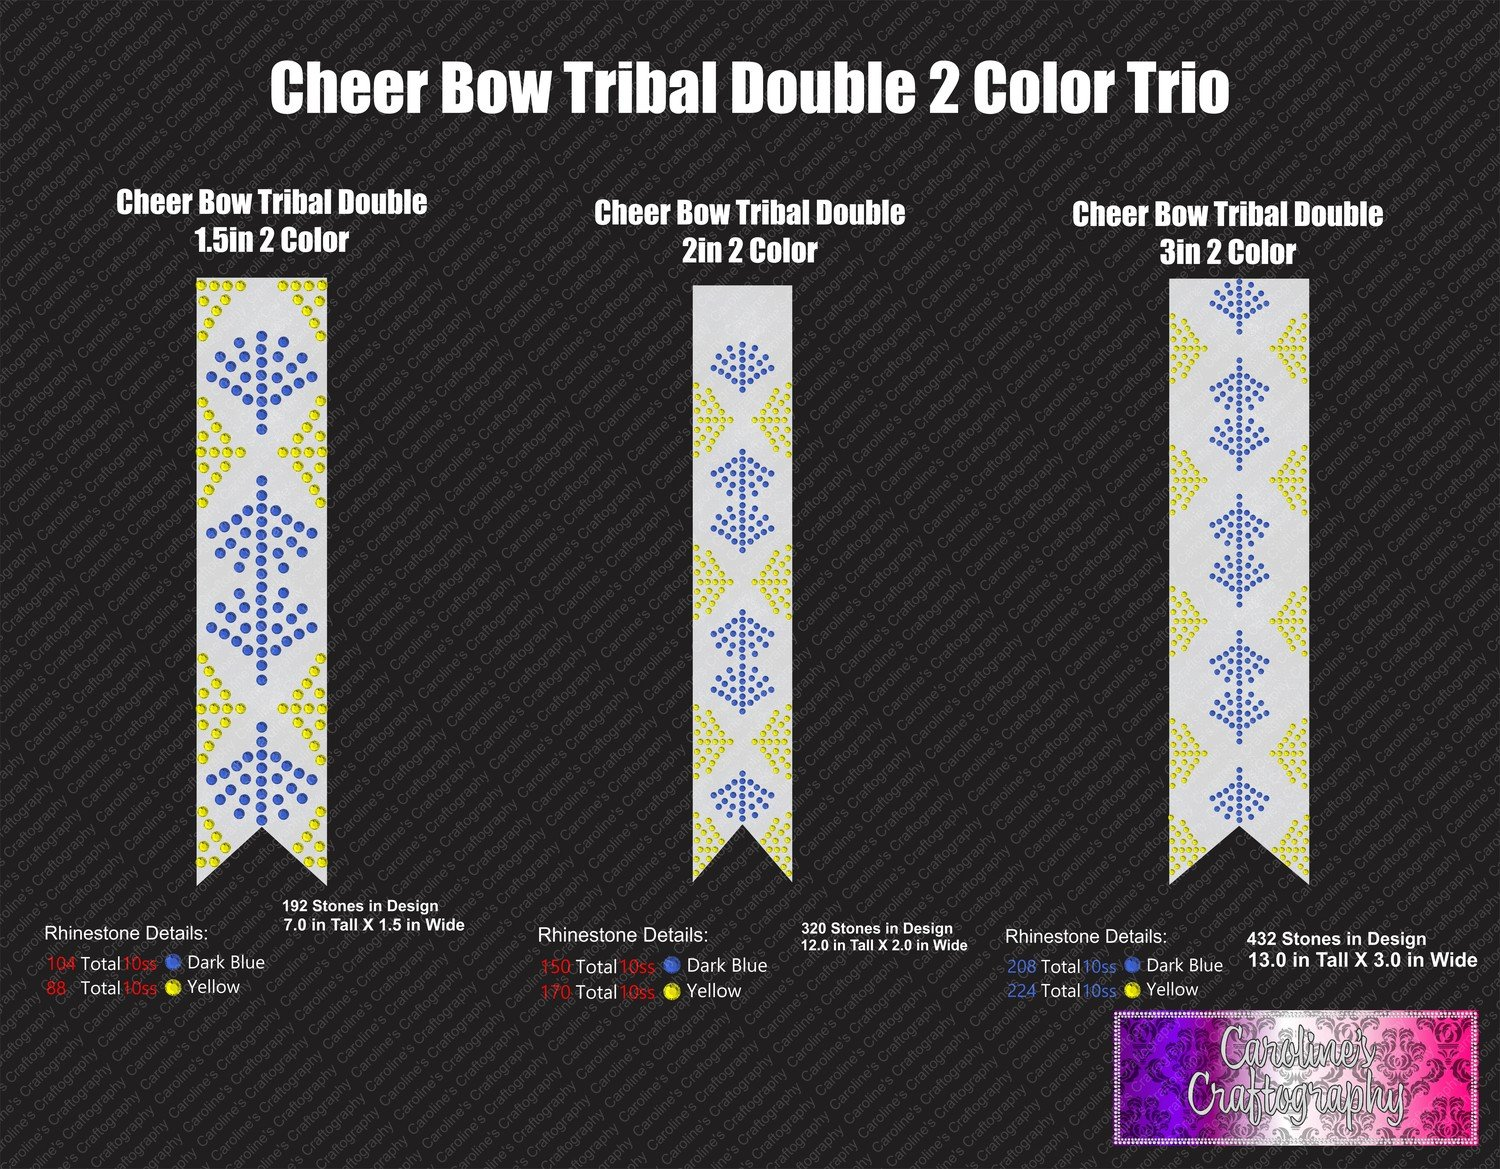 Tribal Double 2 Color Cheer Bow Stone Trio